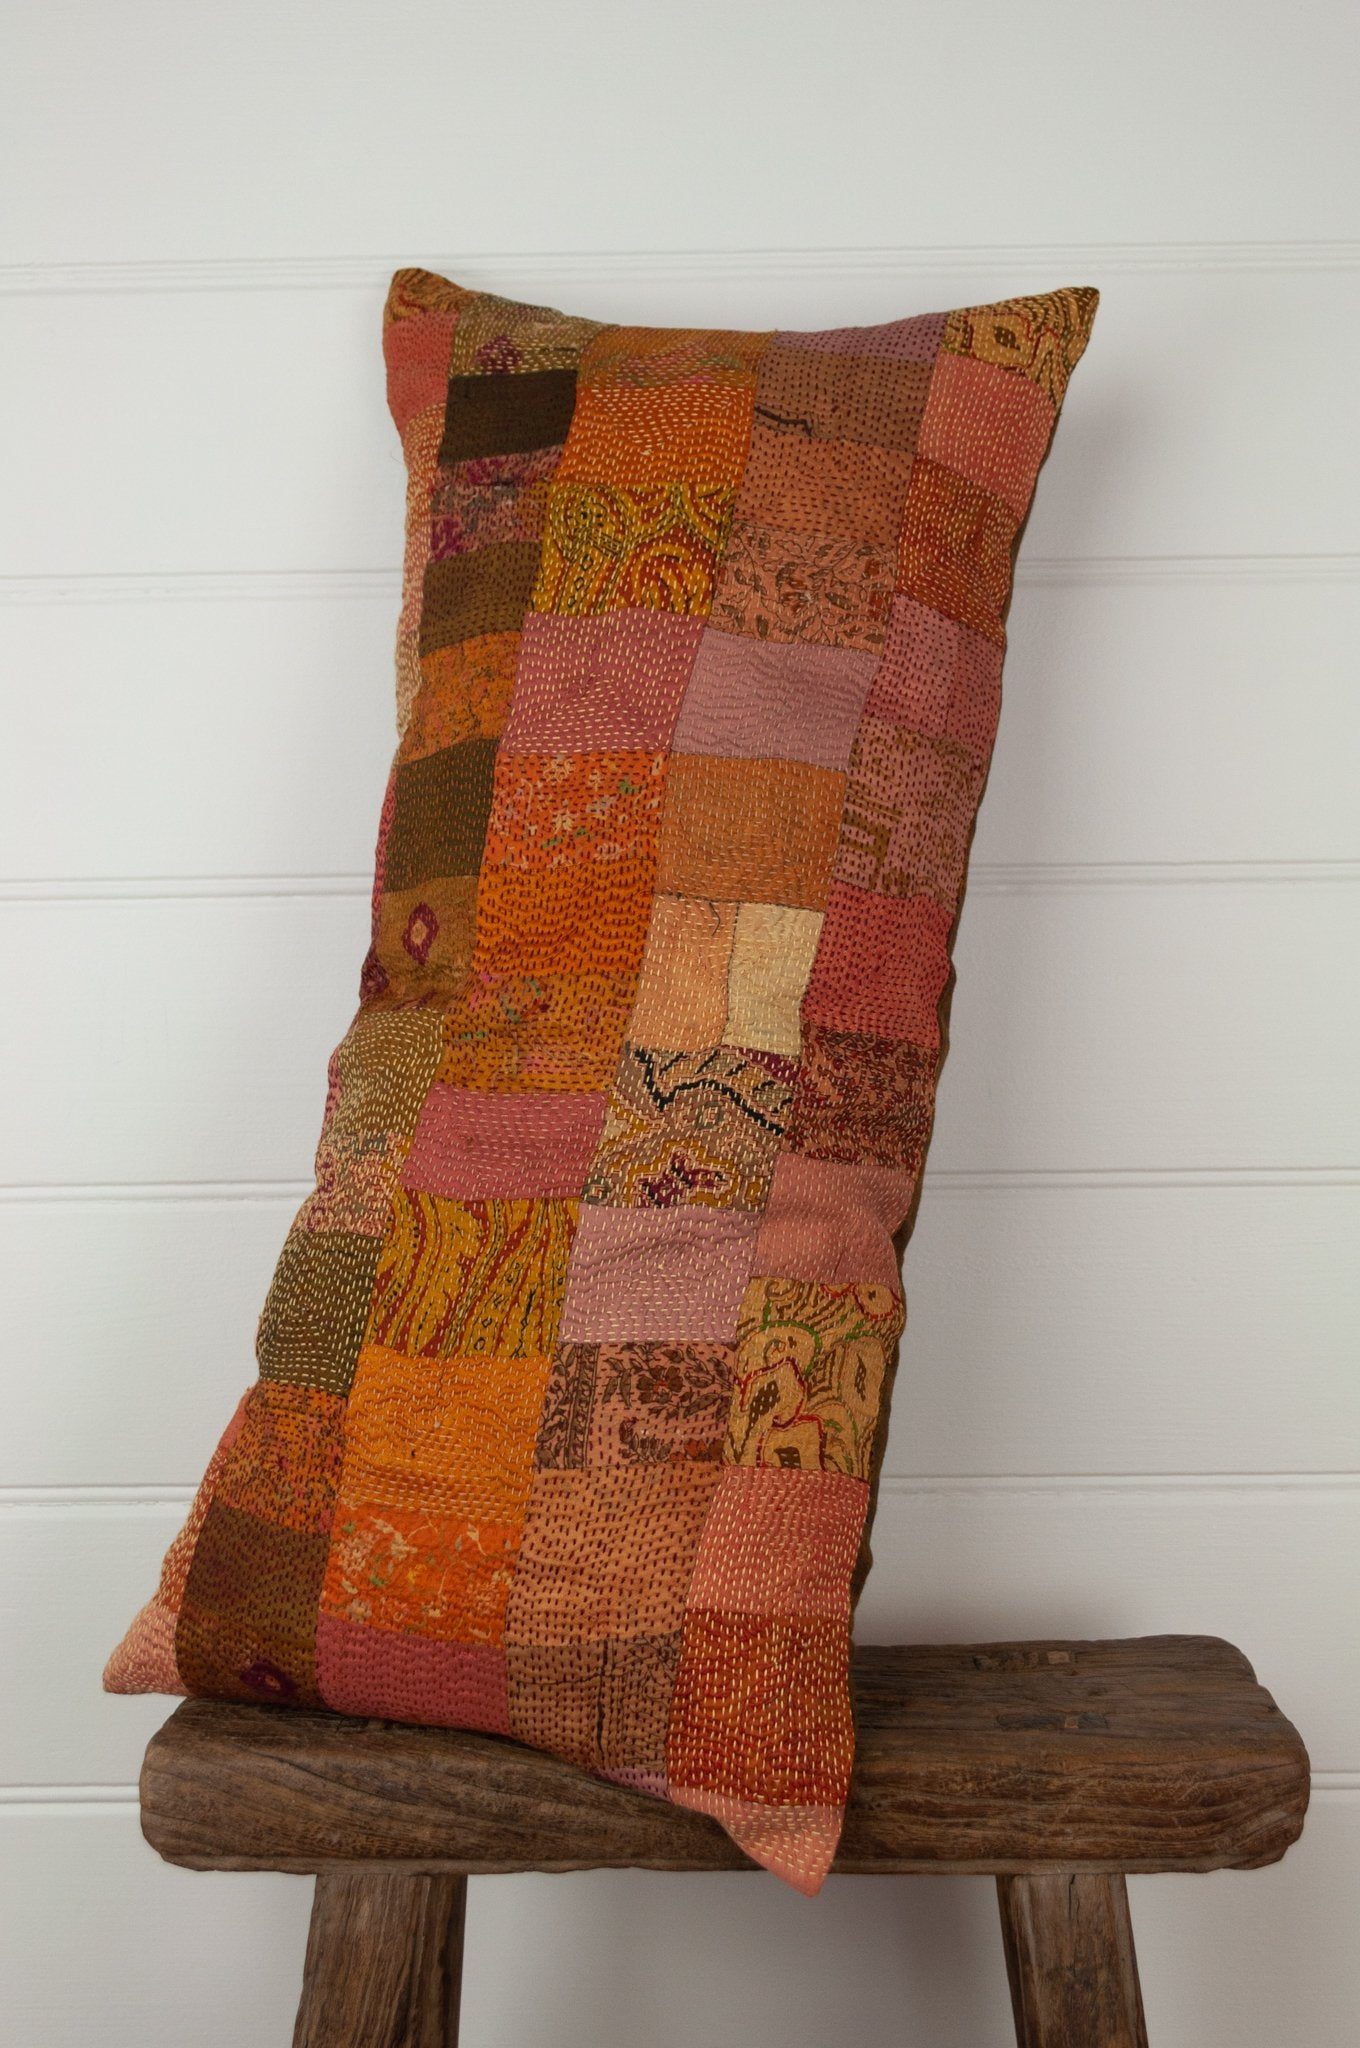 Vintage silk kantha bolster cushion, 30cmx60cm, in rich autumnal tones of orange, terracotta and vintage rose.